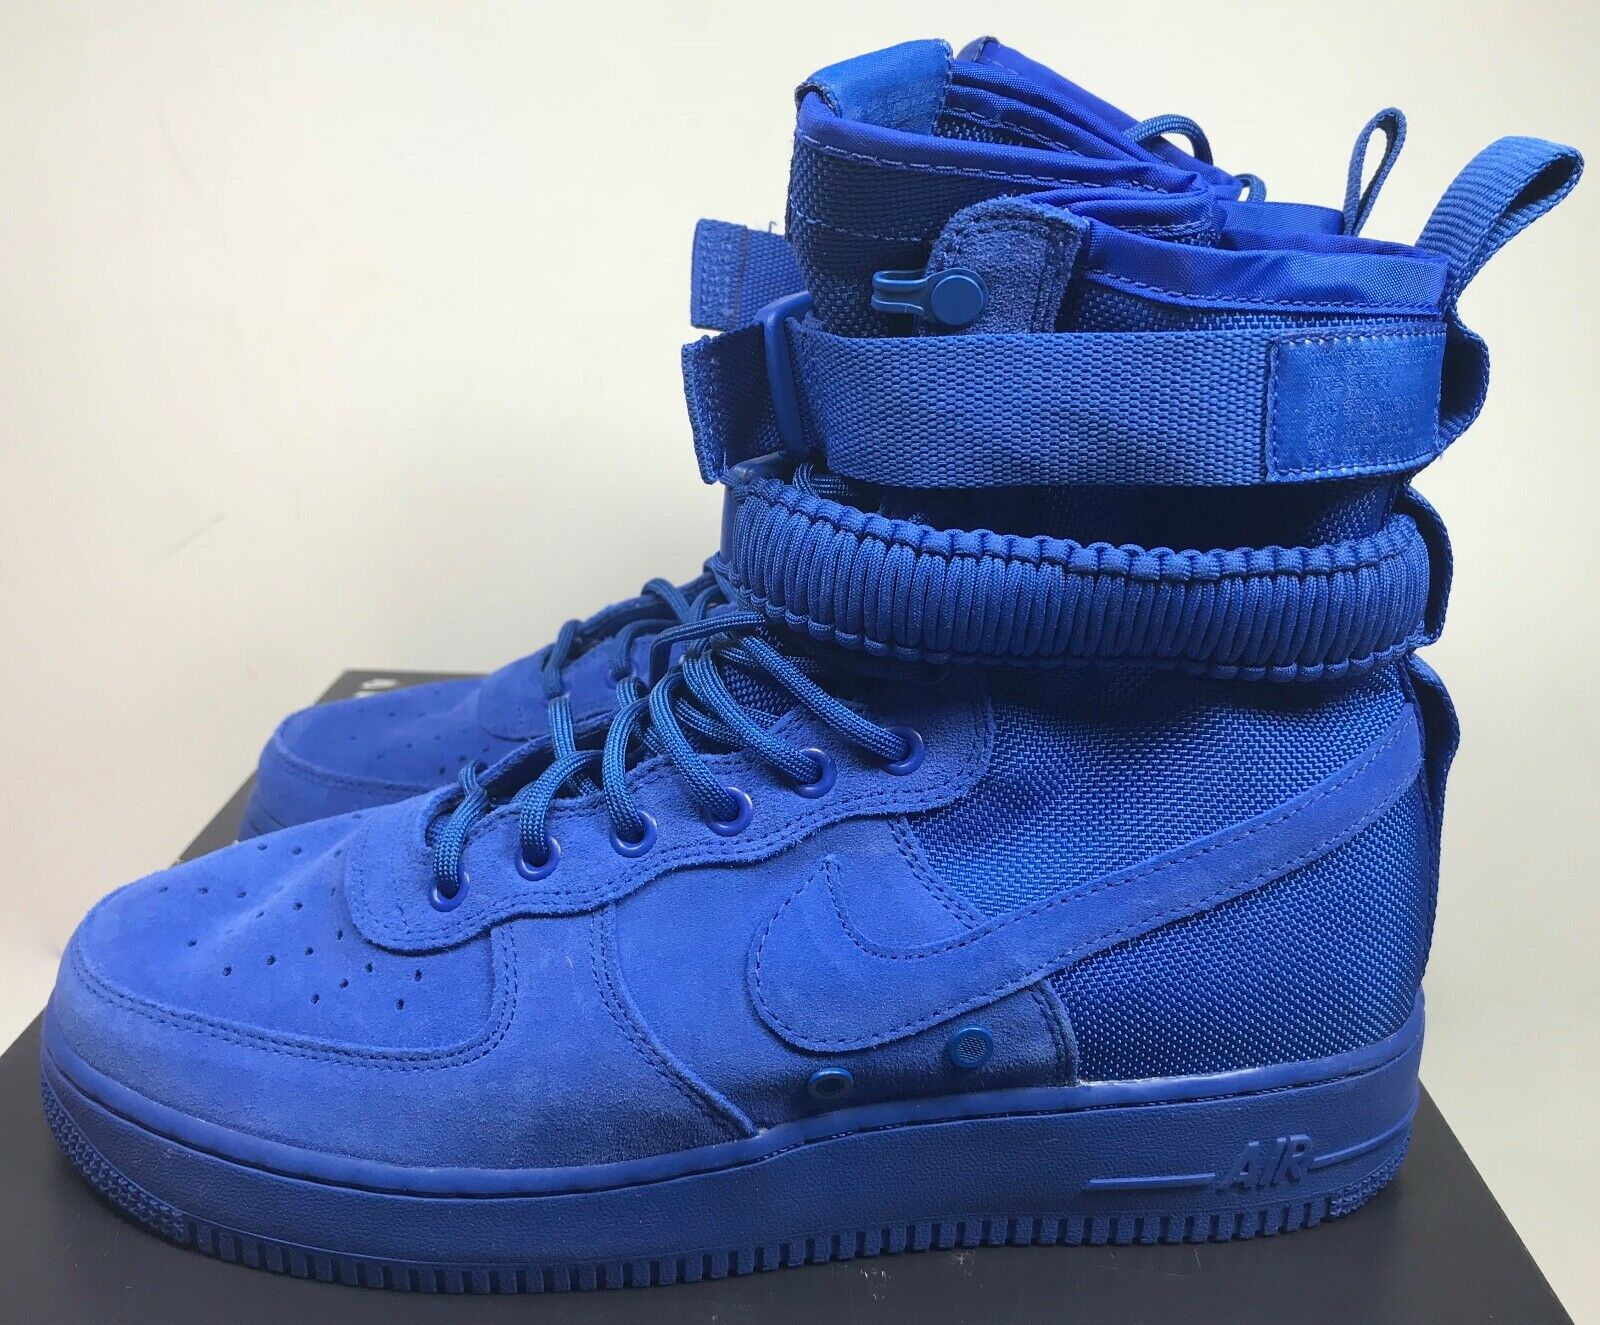 2e0f734cacf6f Nike SF Af1 Air Force 1 864024-401 Blue Suede Game Royal DS Size 11 for  sale online | eBay